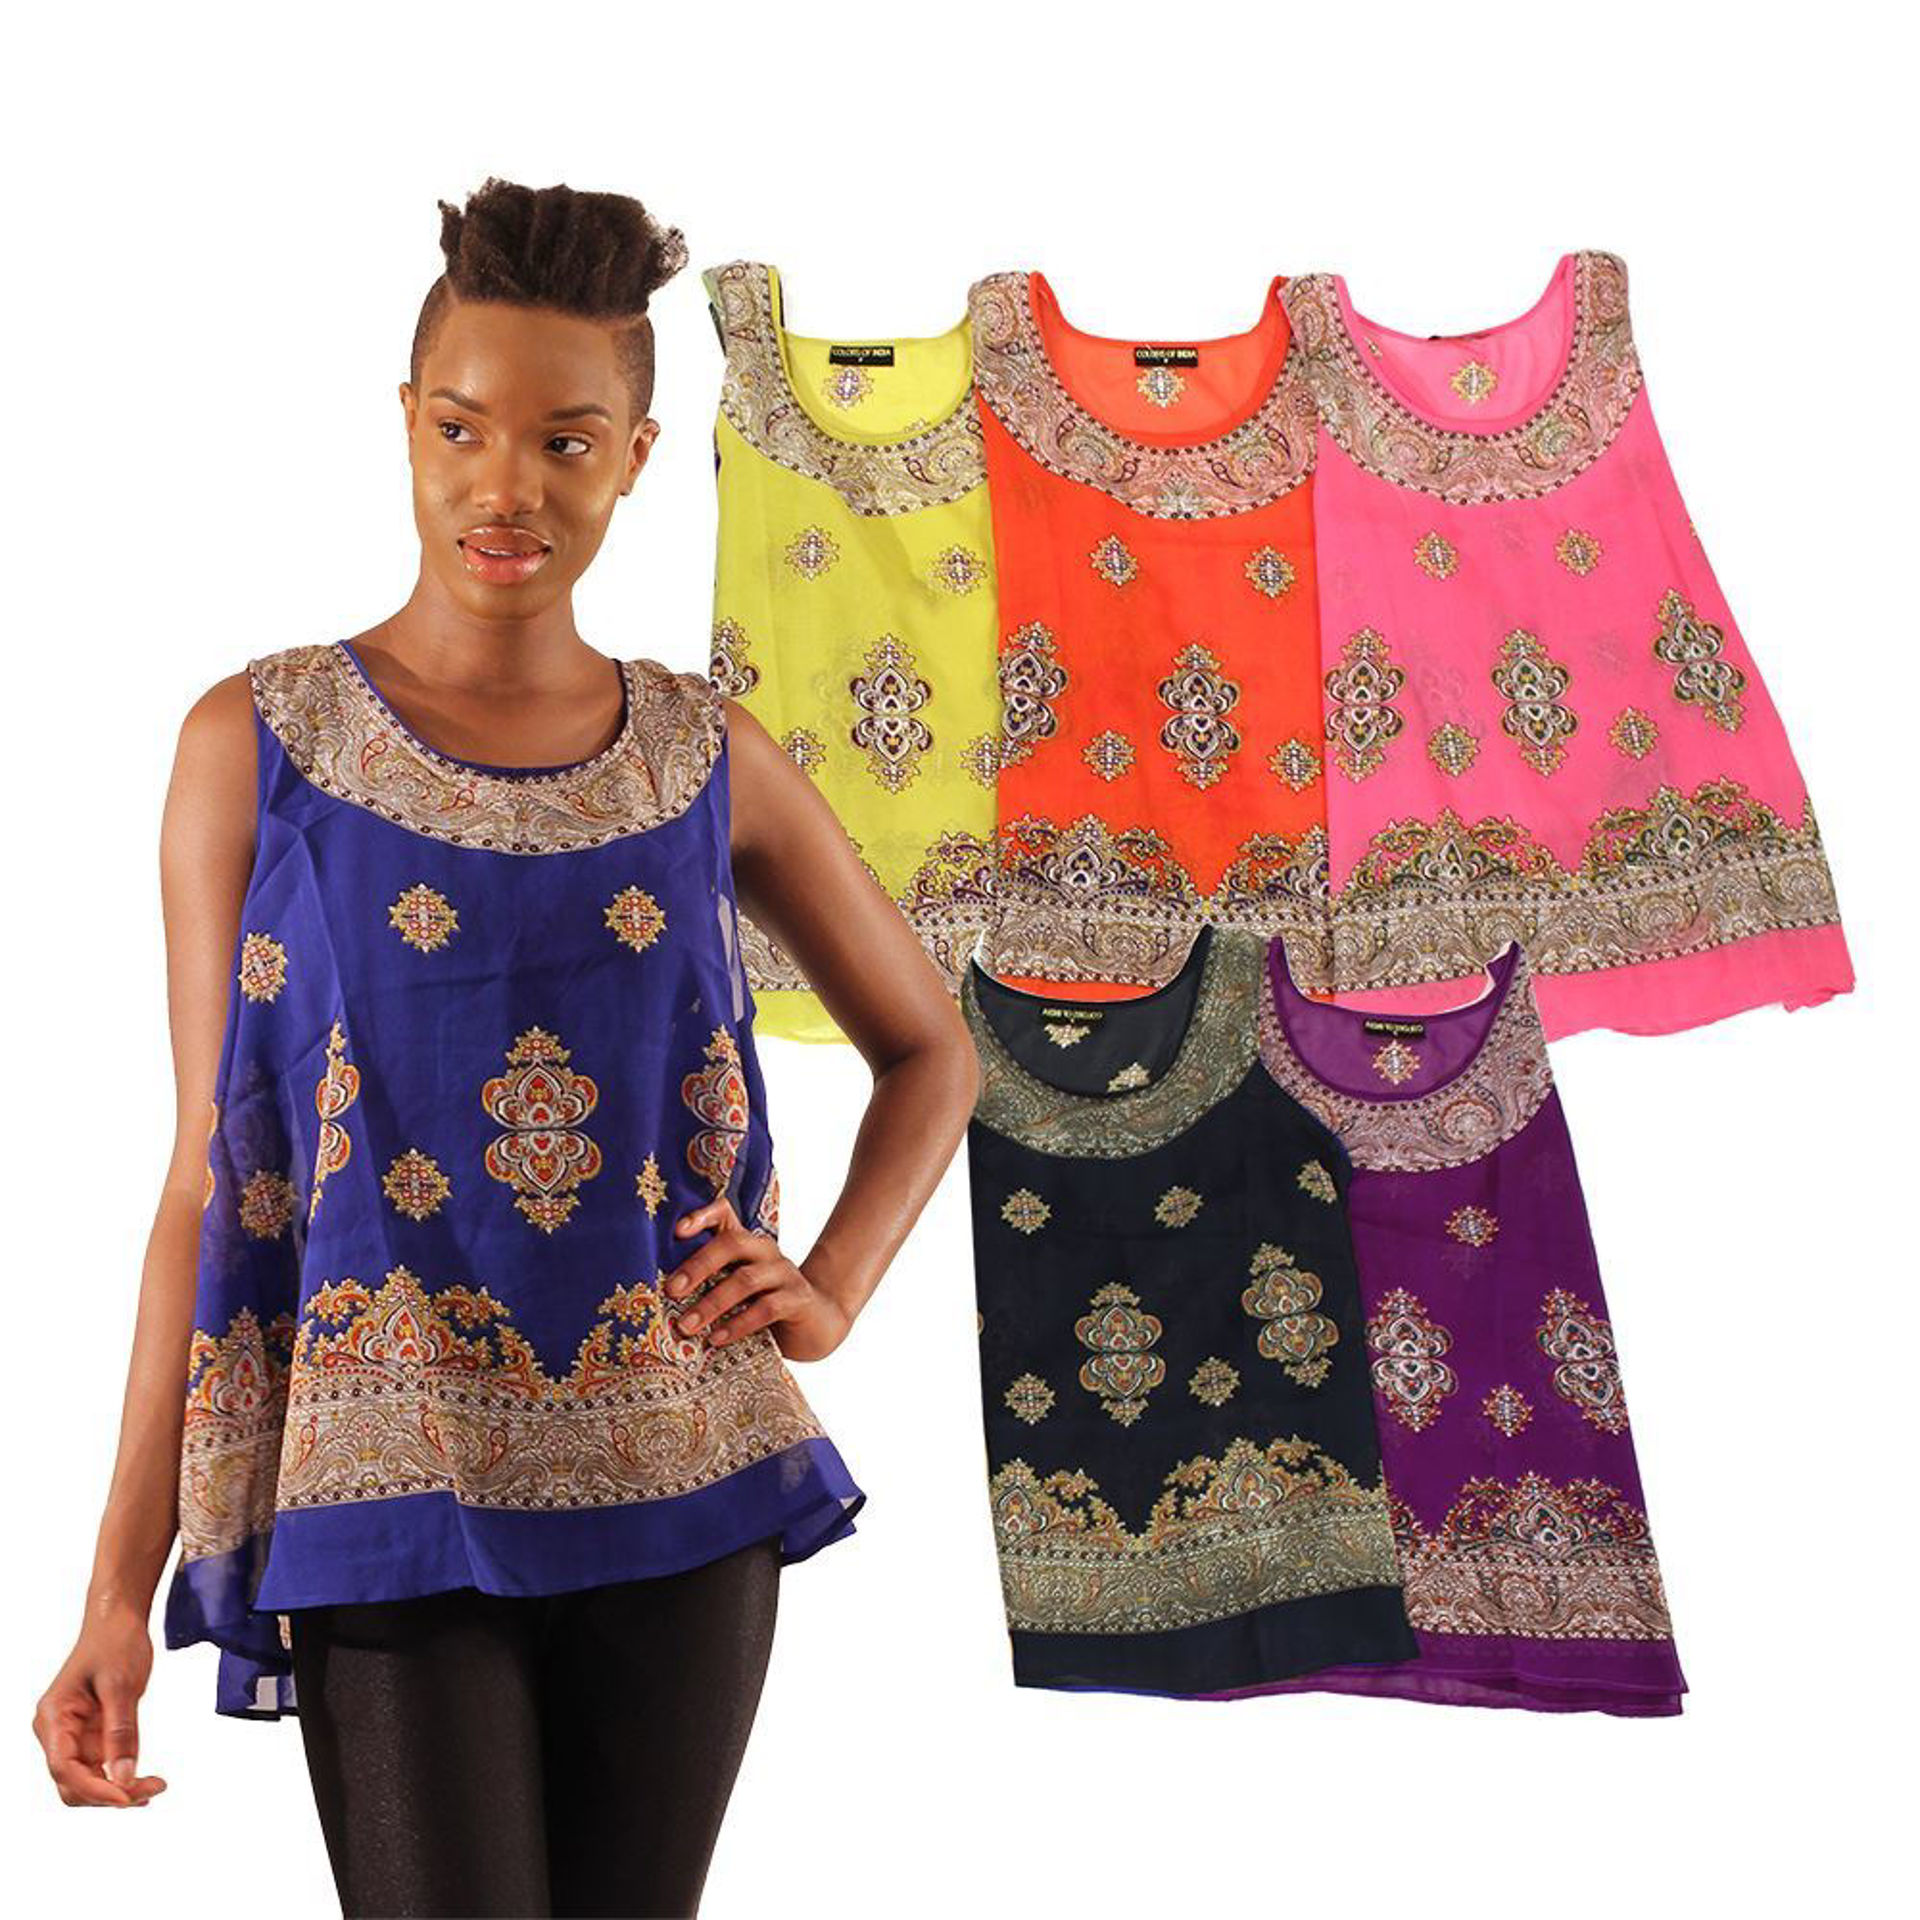 Picture of Set Of 6 Sleeveless Summer Tops